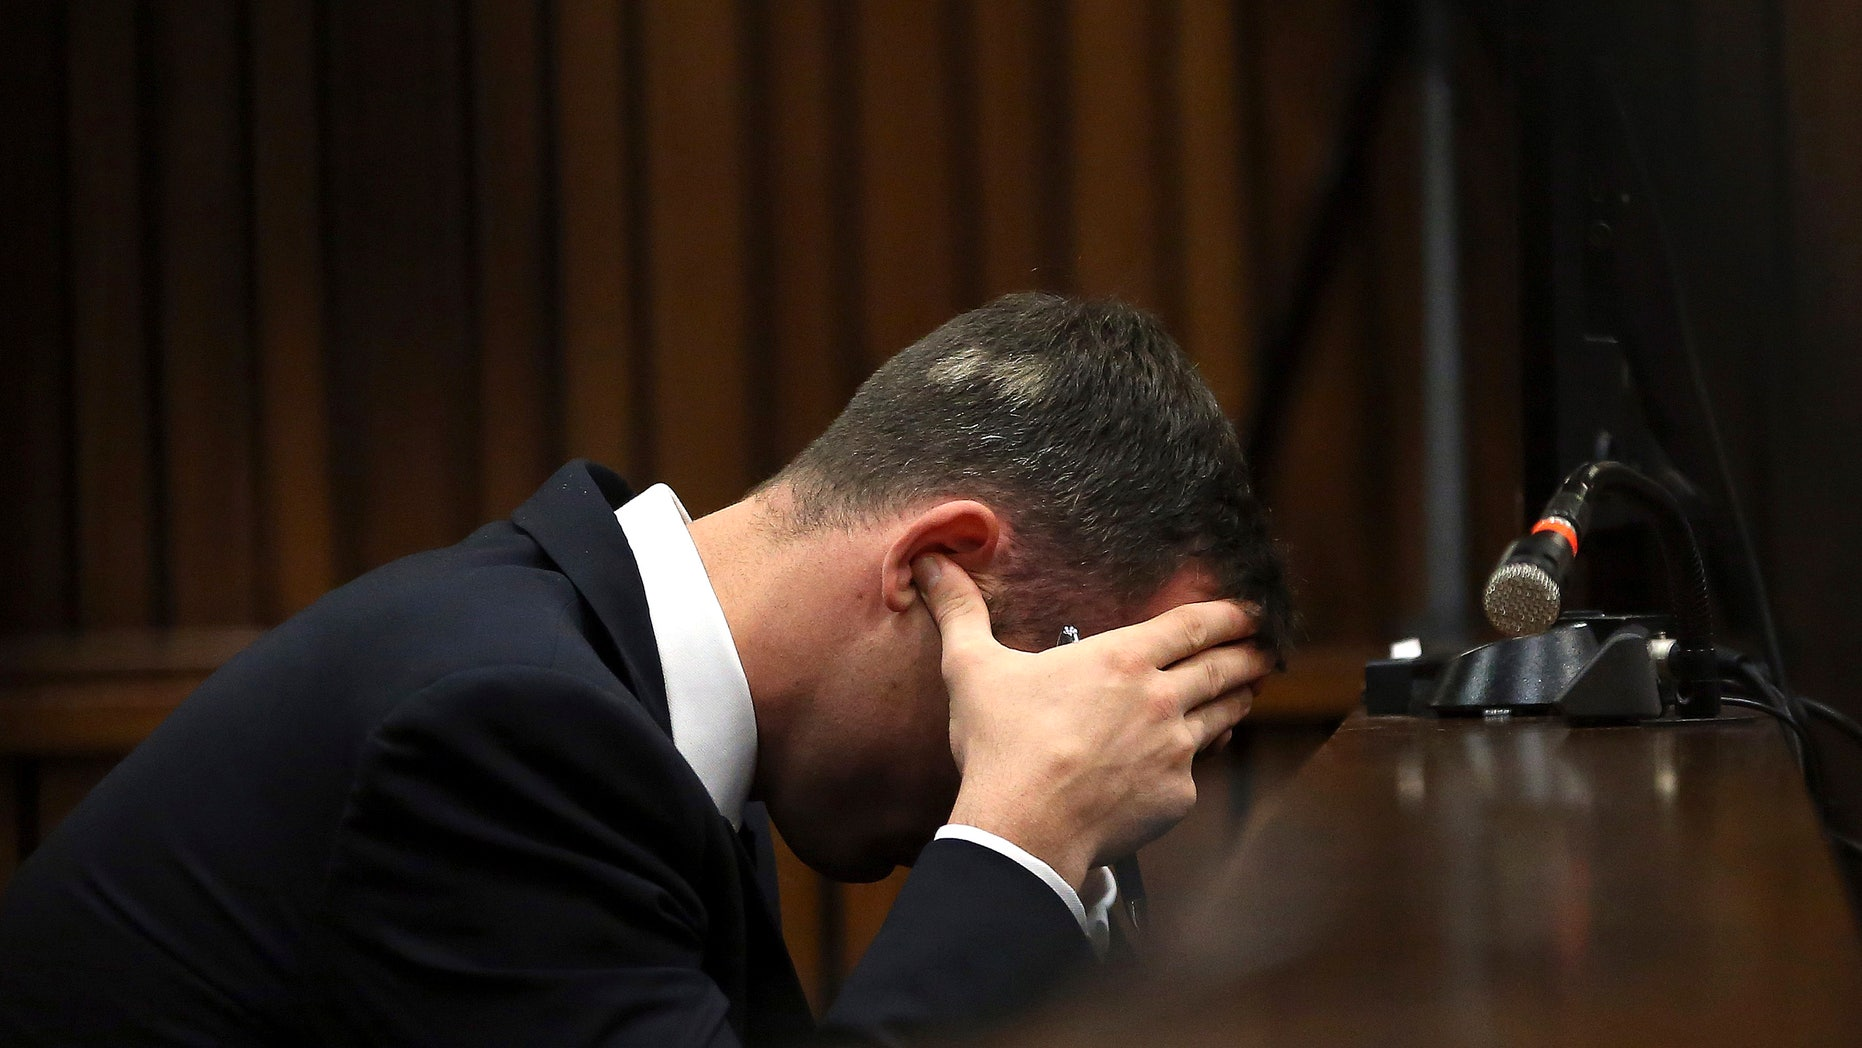 March 19, 2014: Oscar Pistorius, cradles his head in his hands as he listens to ballistic evidence being given in the court during his murder trial in Pretoria, South Africa.